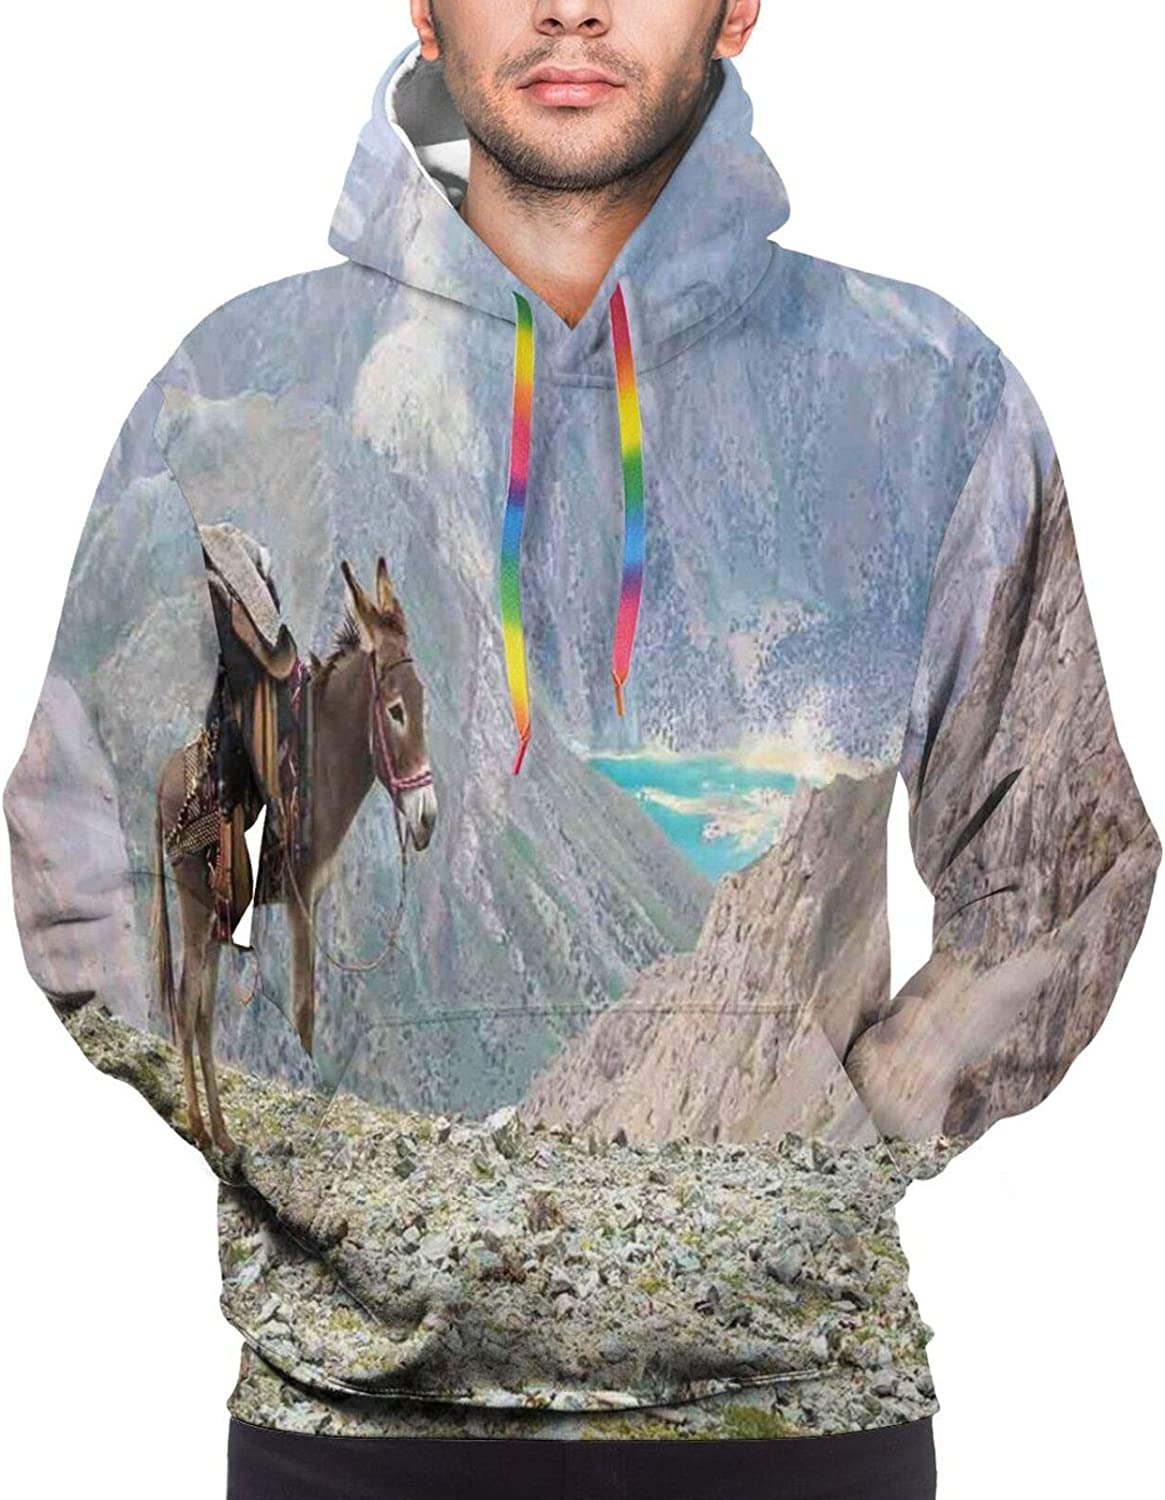 Men's Hoodies Sweatshirts,Animal with Spikes Listening Music from Its Retro Cassette Player Vintage Inspired